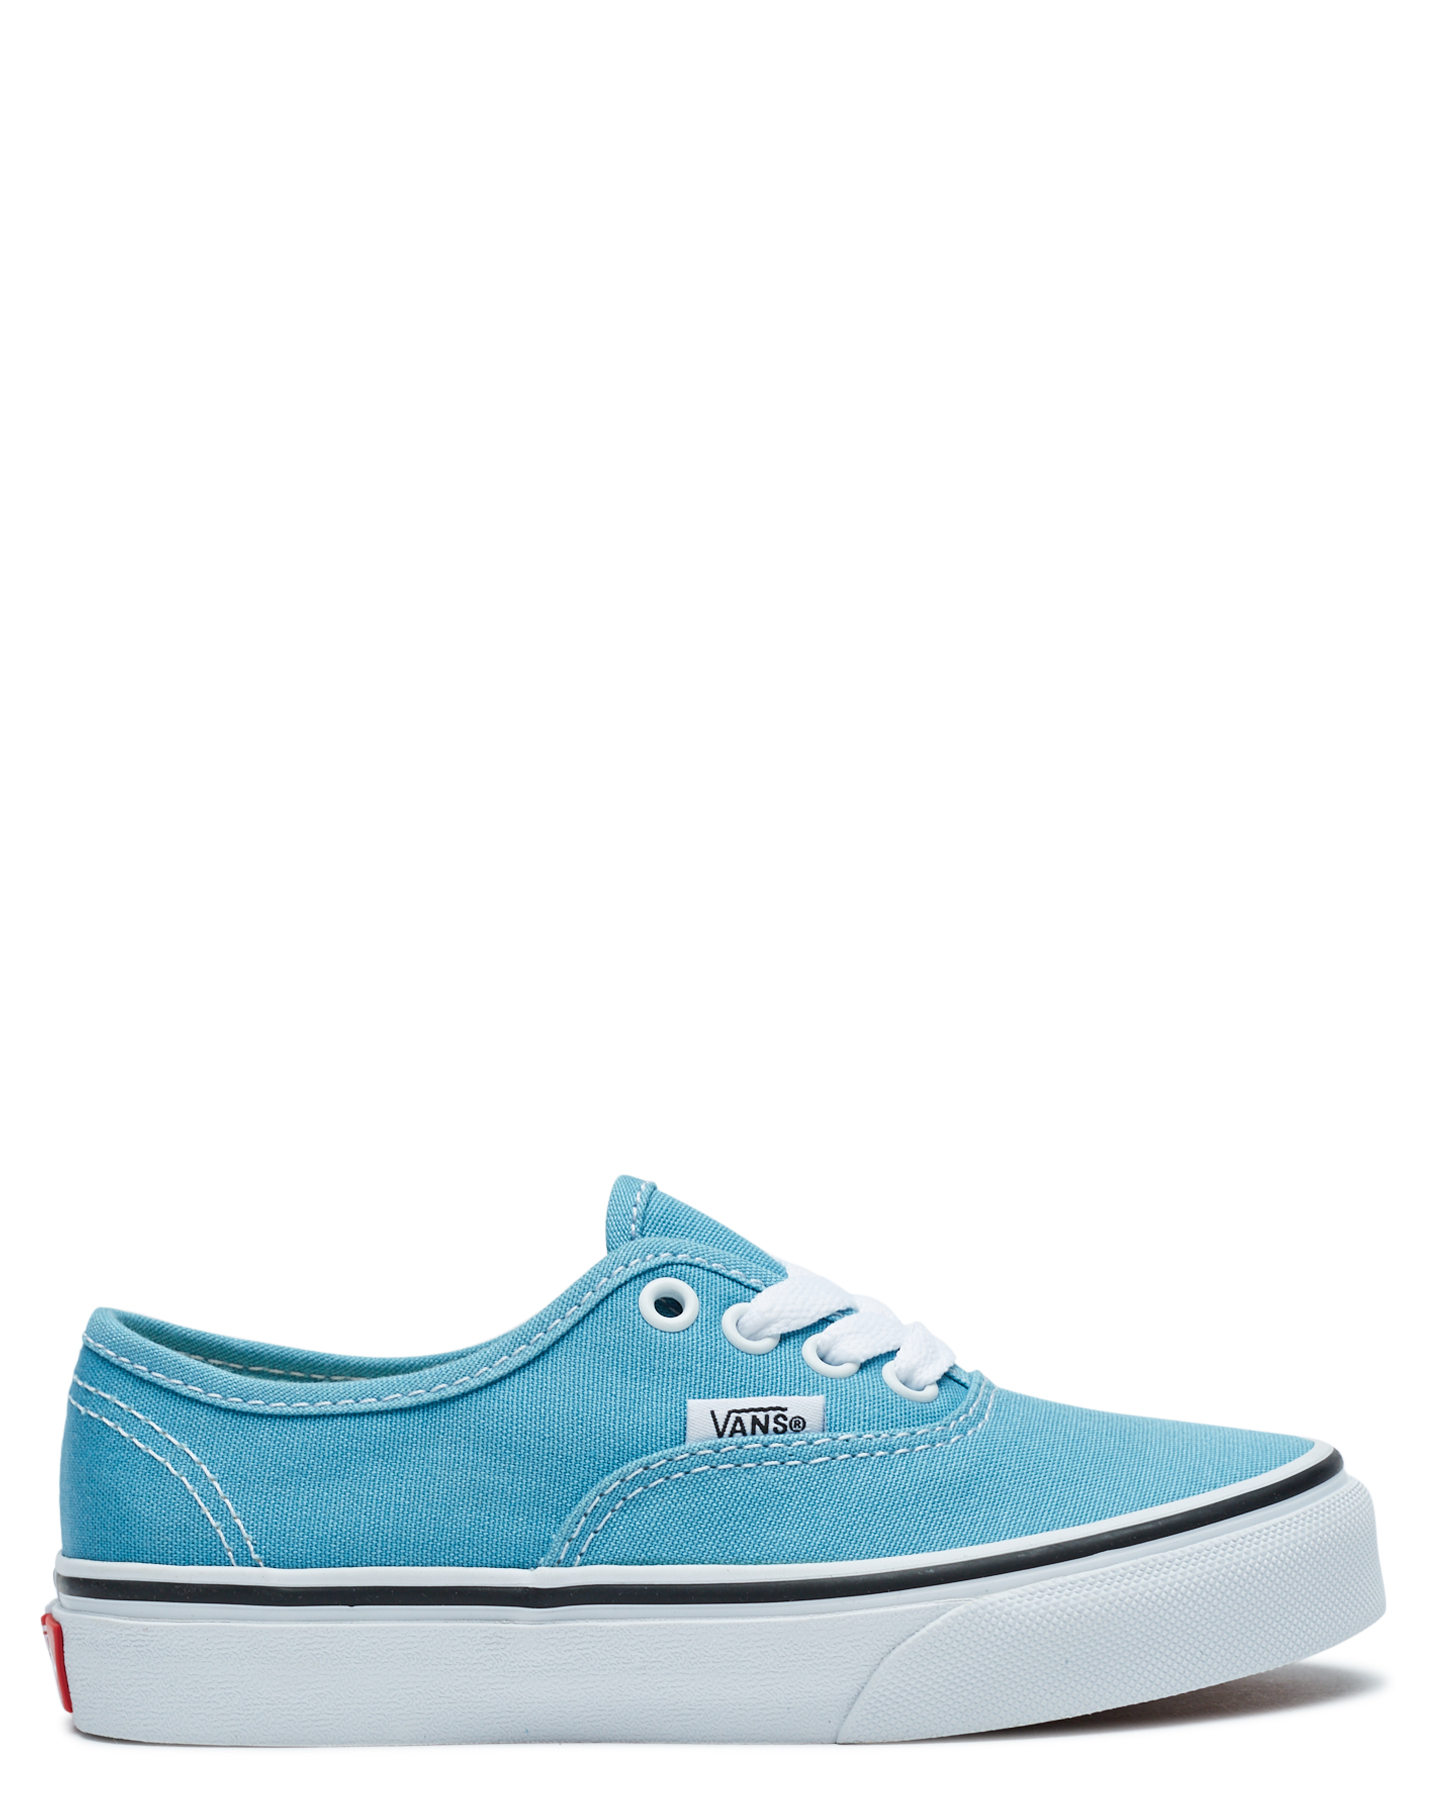 Vans Authentic Shoe - Youth Blue  White